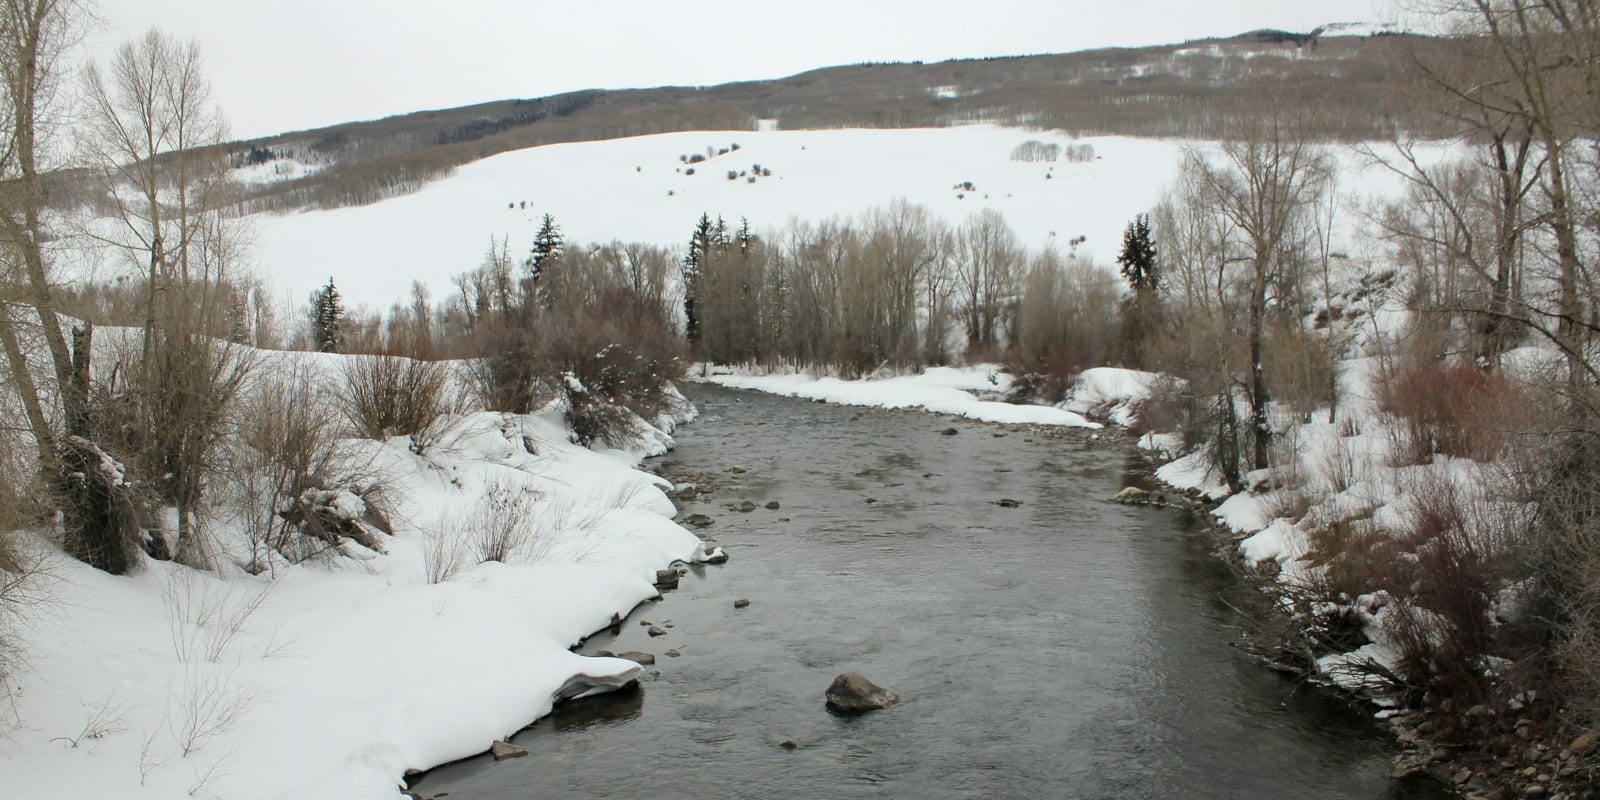 Image of the East River during winter